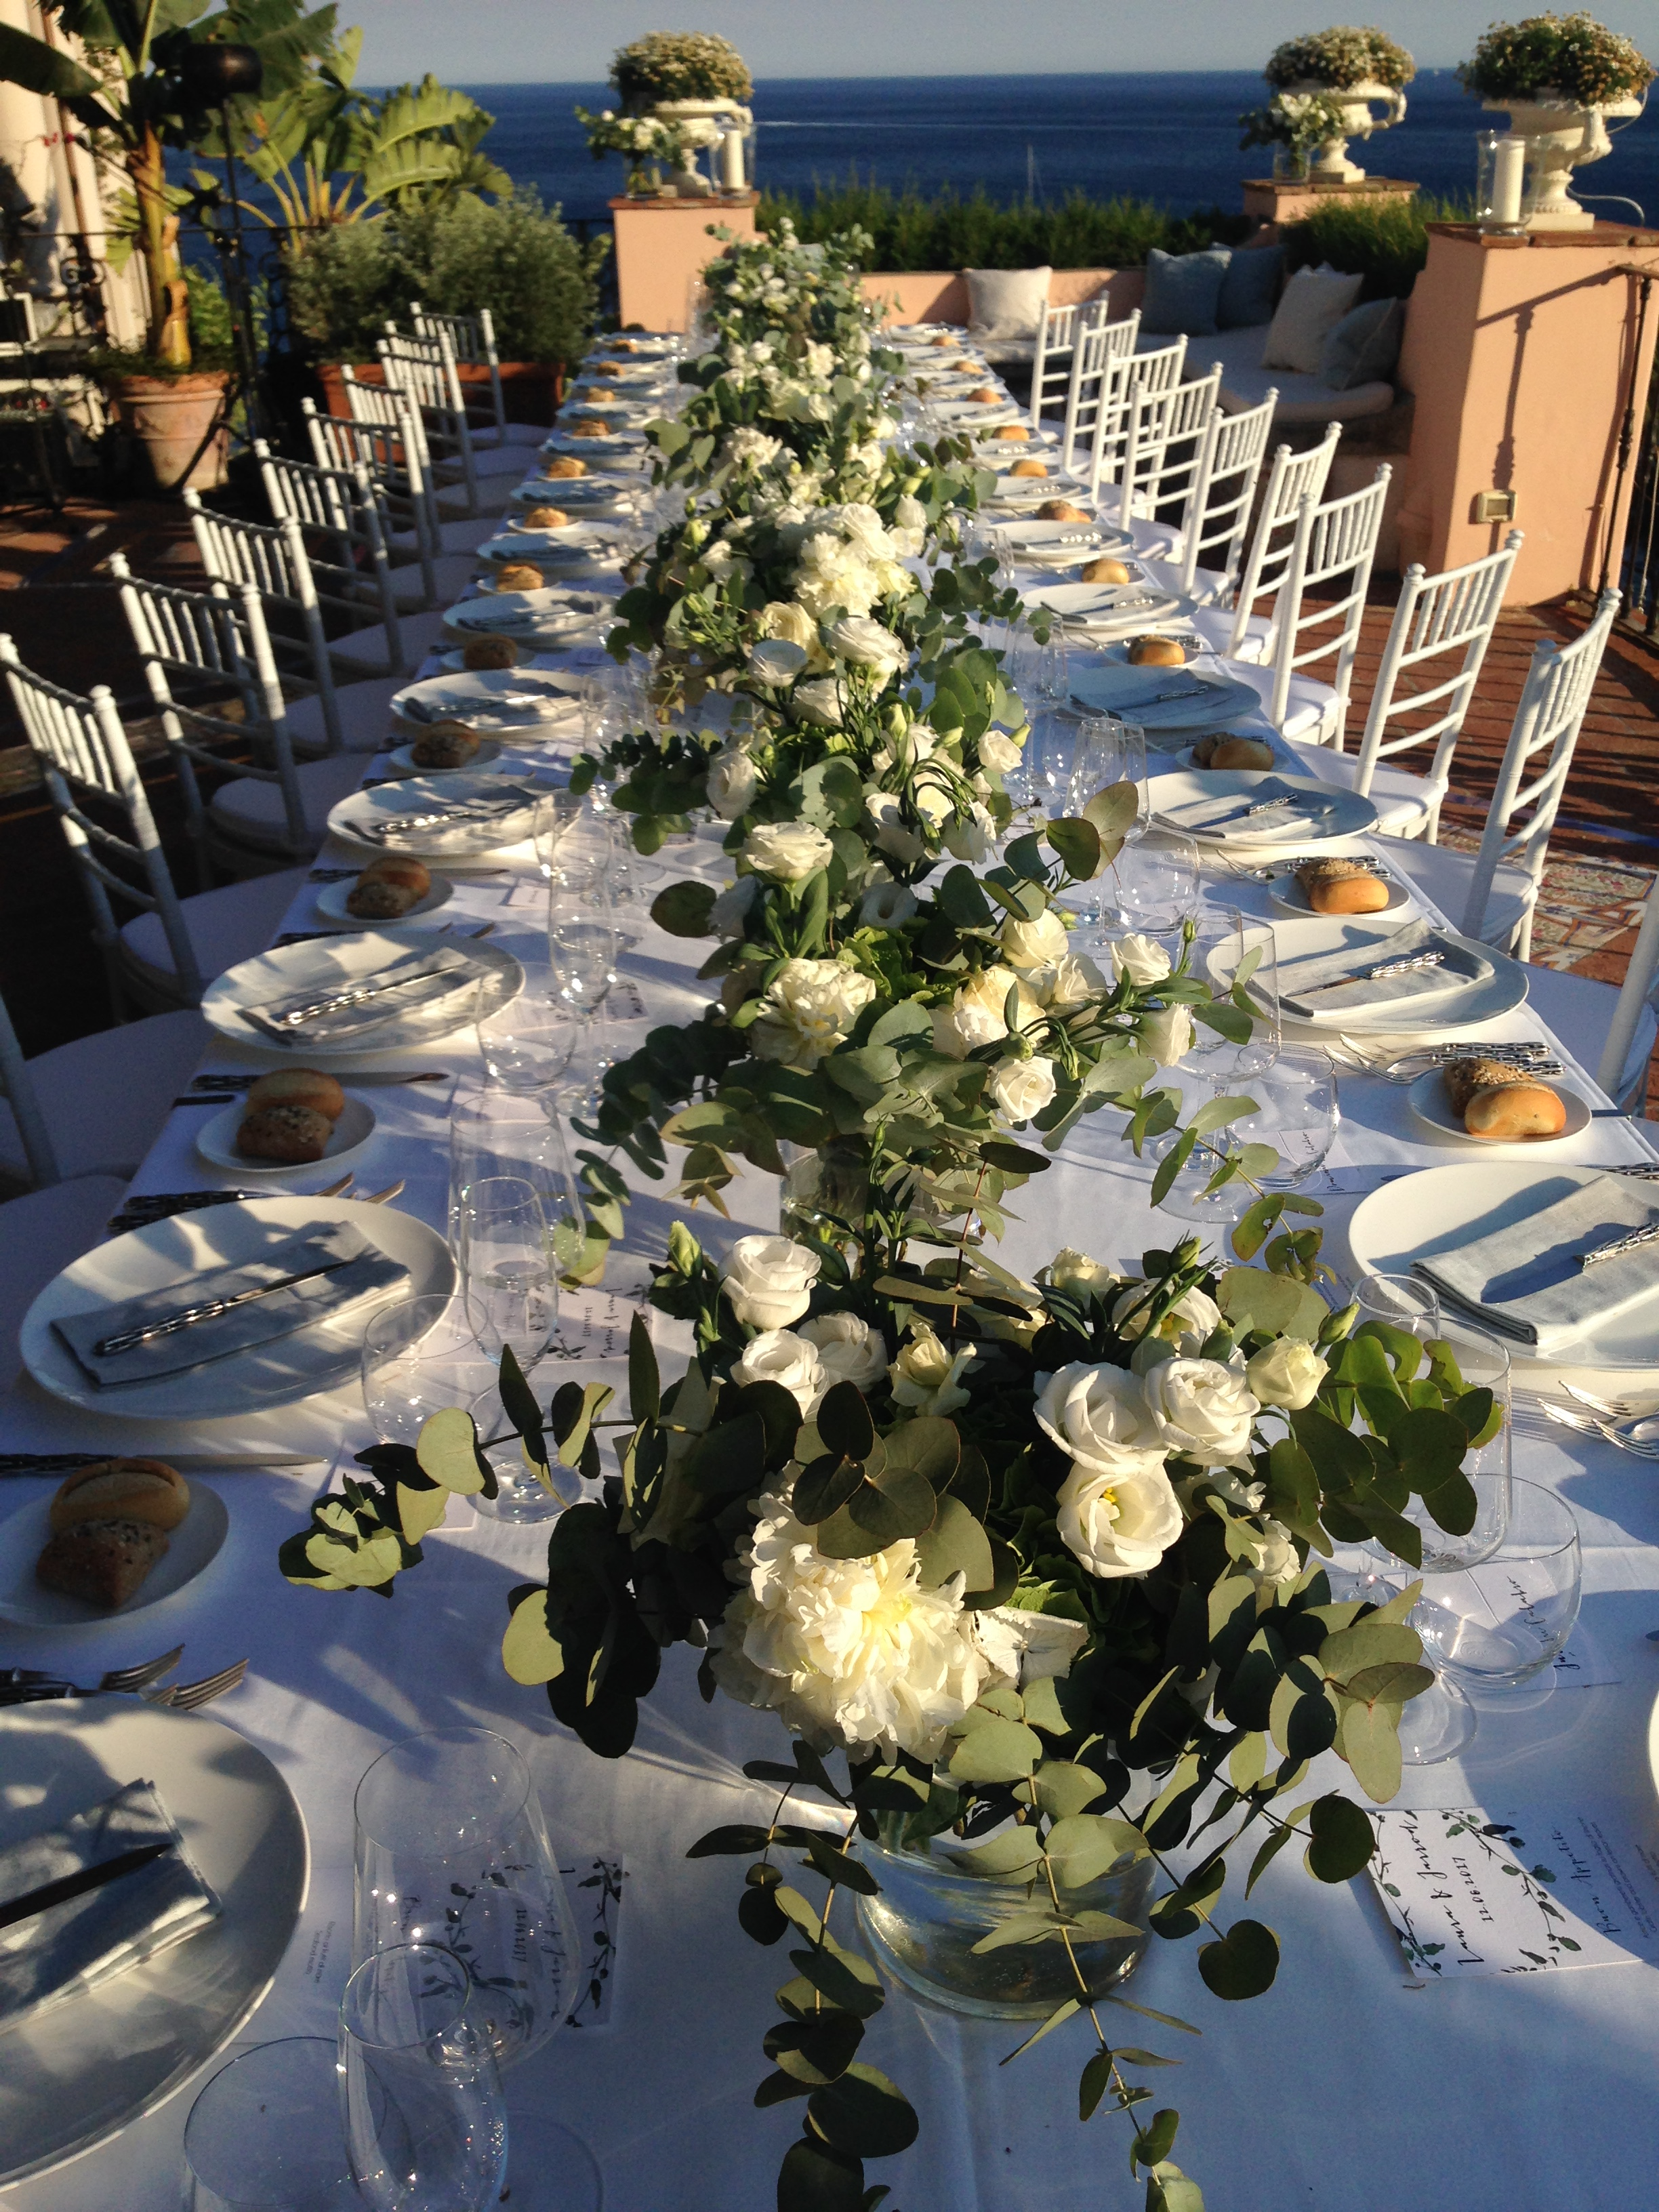 http://www.weddingamalfi.com/wp-content/uploads/Laura-and-Jarrod-wedding-table-decorations-with-fresh-flowers.jpg